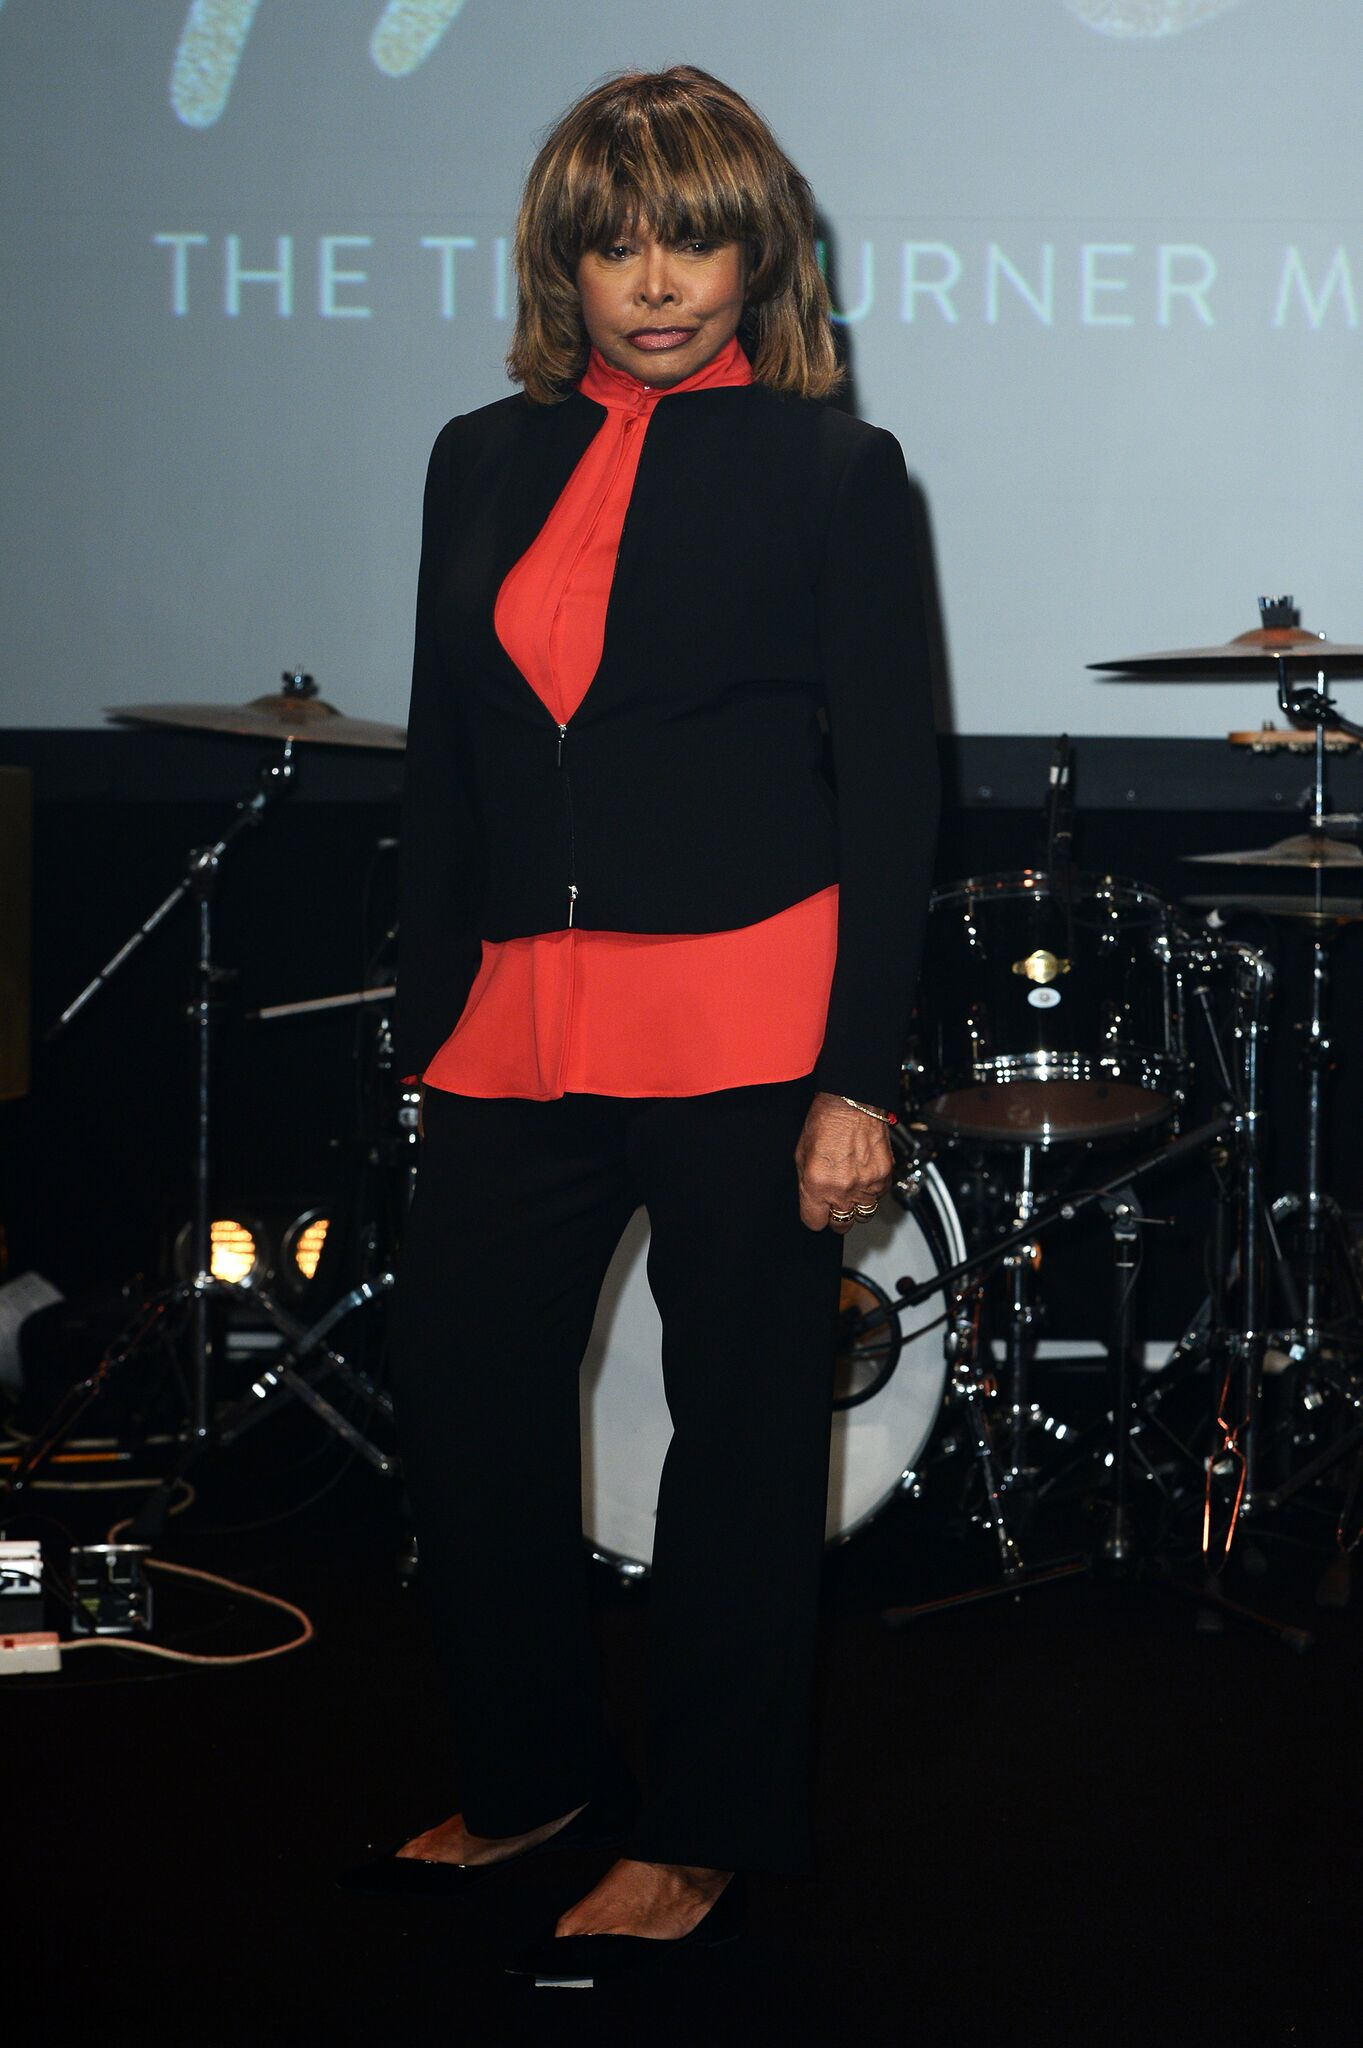 Tina Turner during the 'TINA: The Tina Turner Musical' photocall at Aldwych Theatre   Getty Images